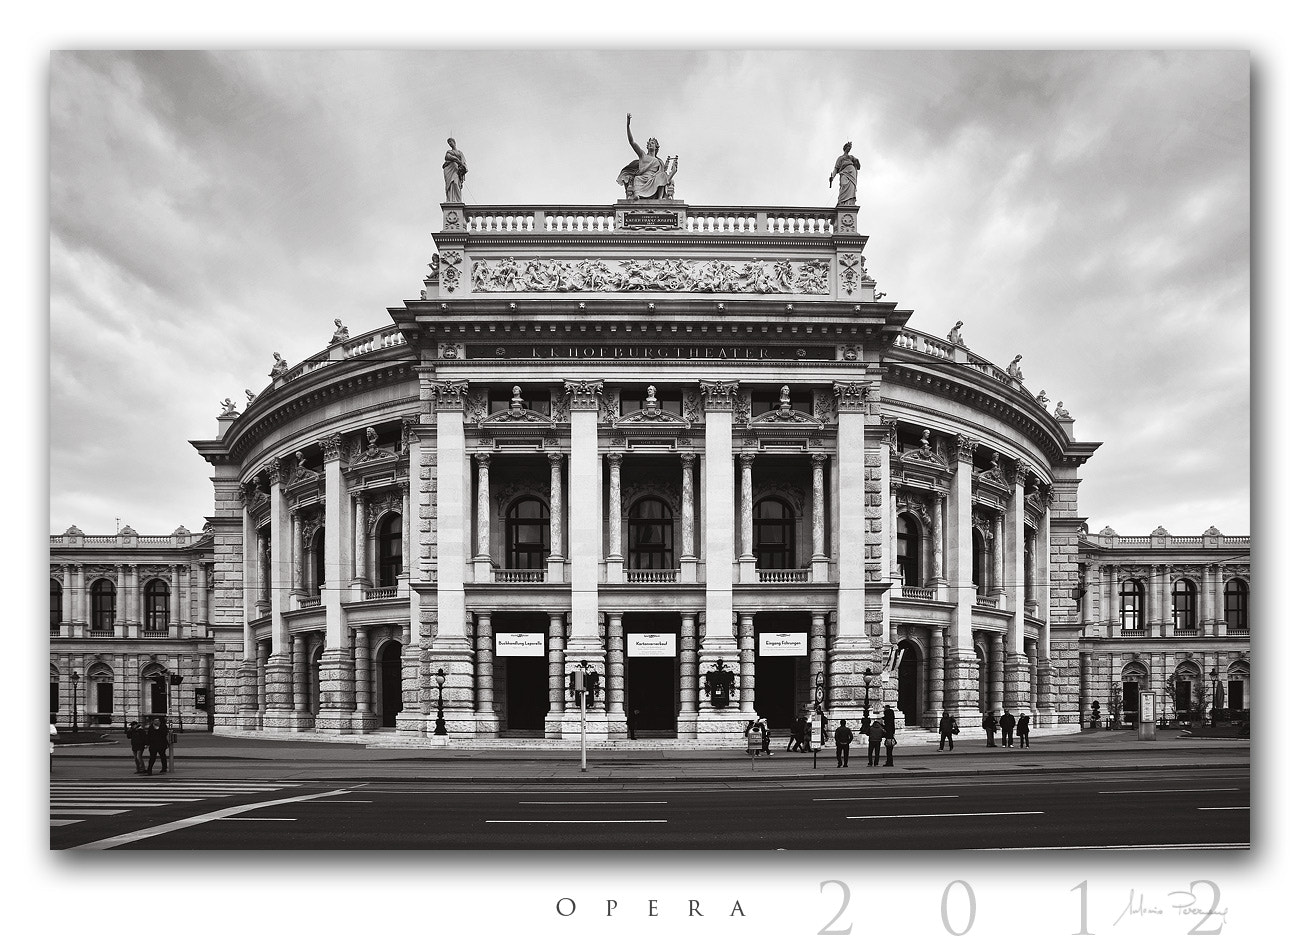 Photograph Opera by Antonio Perrone on 500px